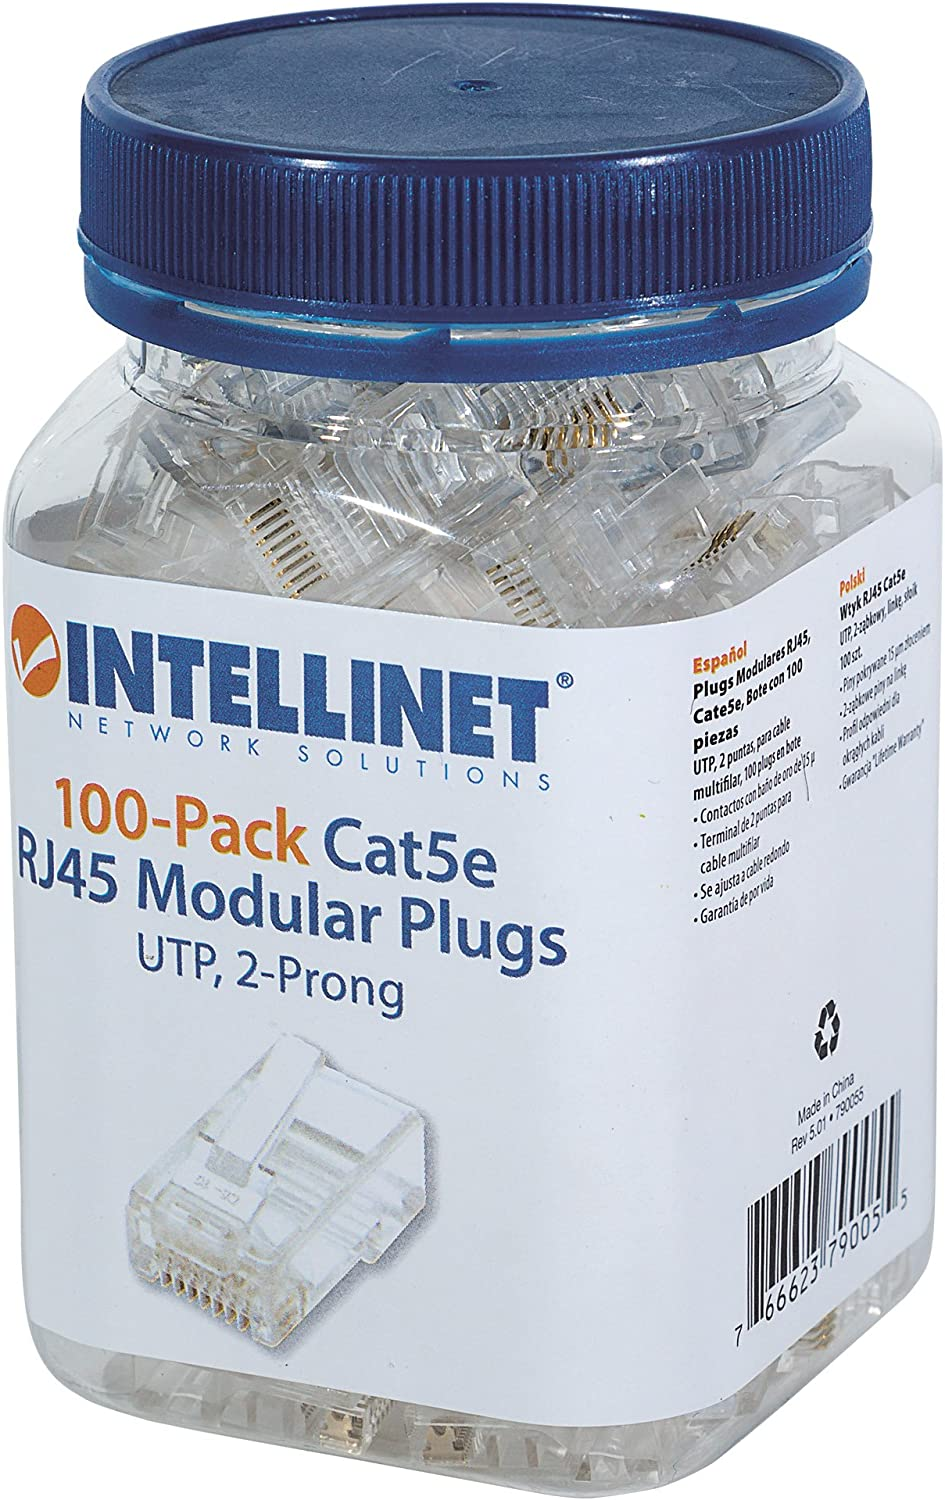 Intellinet Cat5 RJ45 Connector Ends Set 100 pcs Pro Baltimore Mall Two - with Ranking TOP10